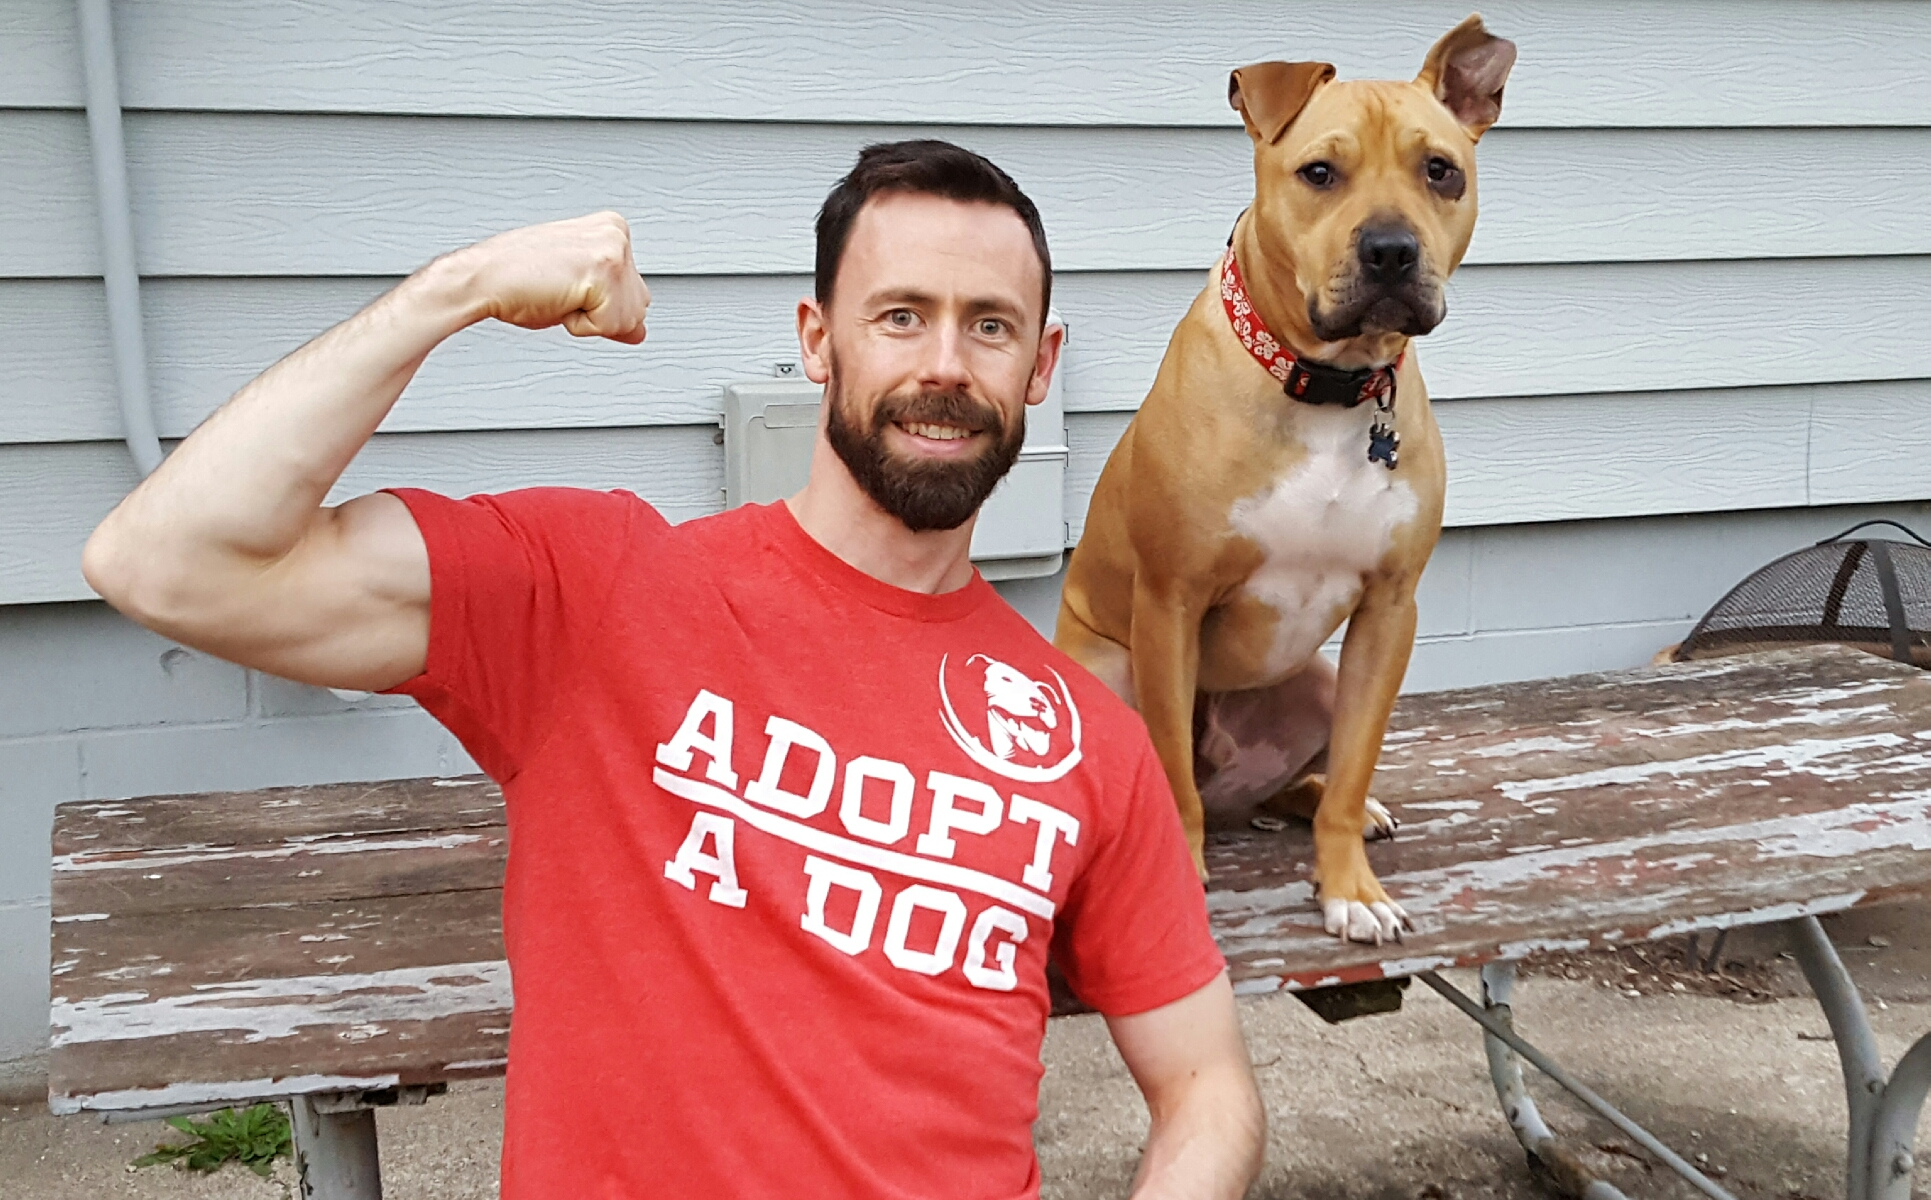 From Frisbee Dog Champ To 'American Ninja Warrior,' All To